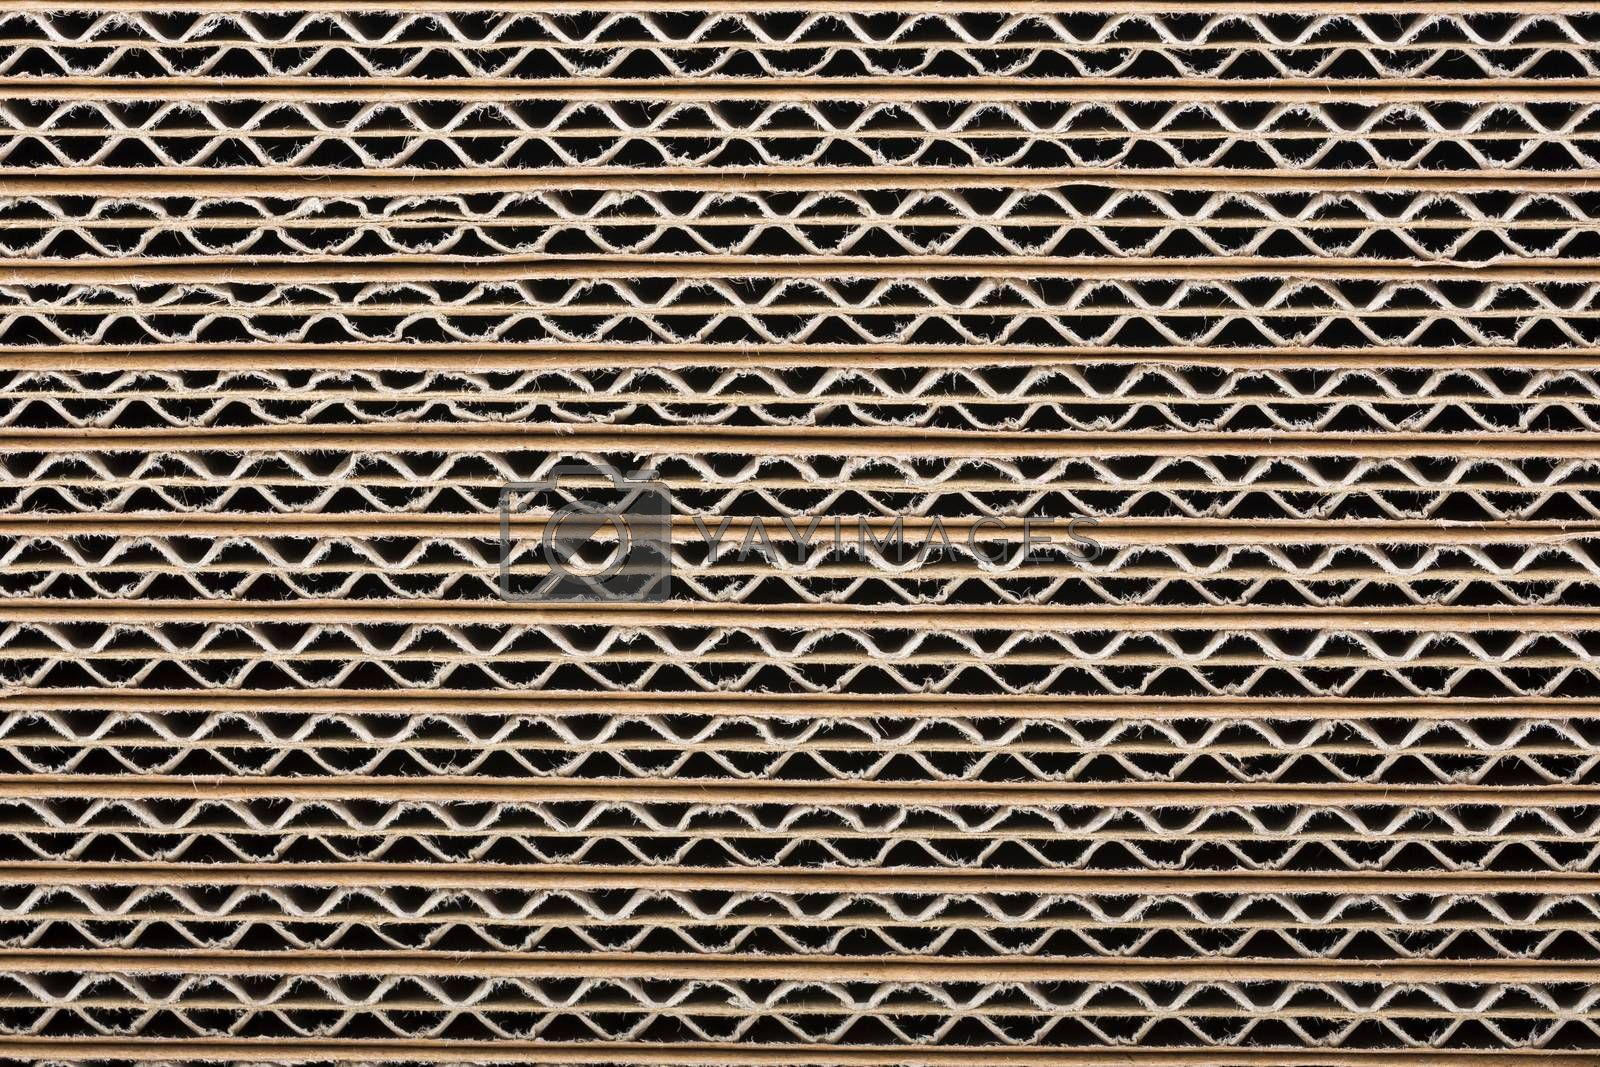 Royalty free image of Cardboard background by johan10